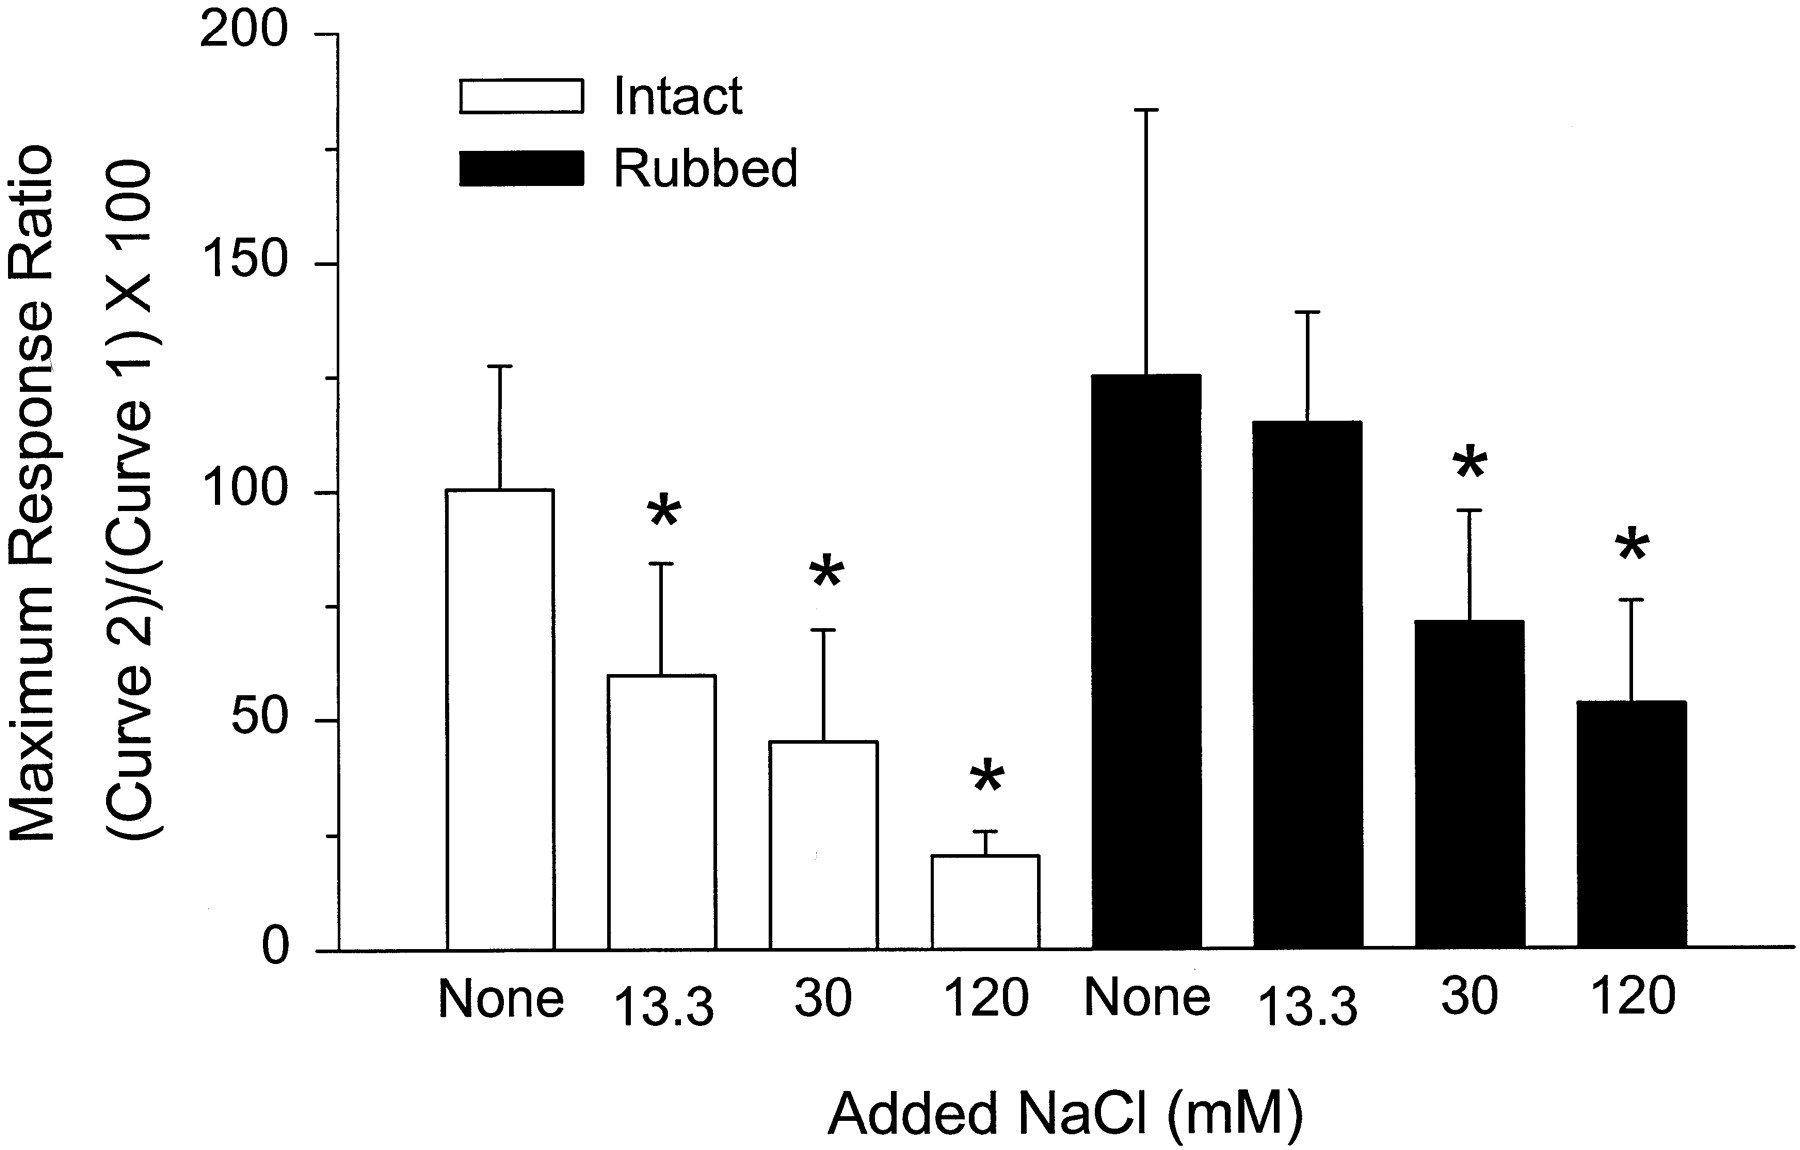 neurotransmitter and maximal contractile response • a single stimulus results in a single contractile response – a muscle twitch (contracts and relaxes) when muscle contractile activity reaches 70% of maximum:.